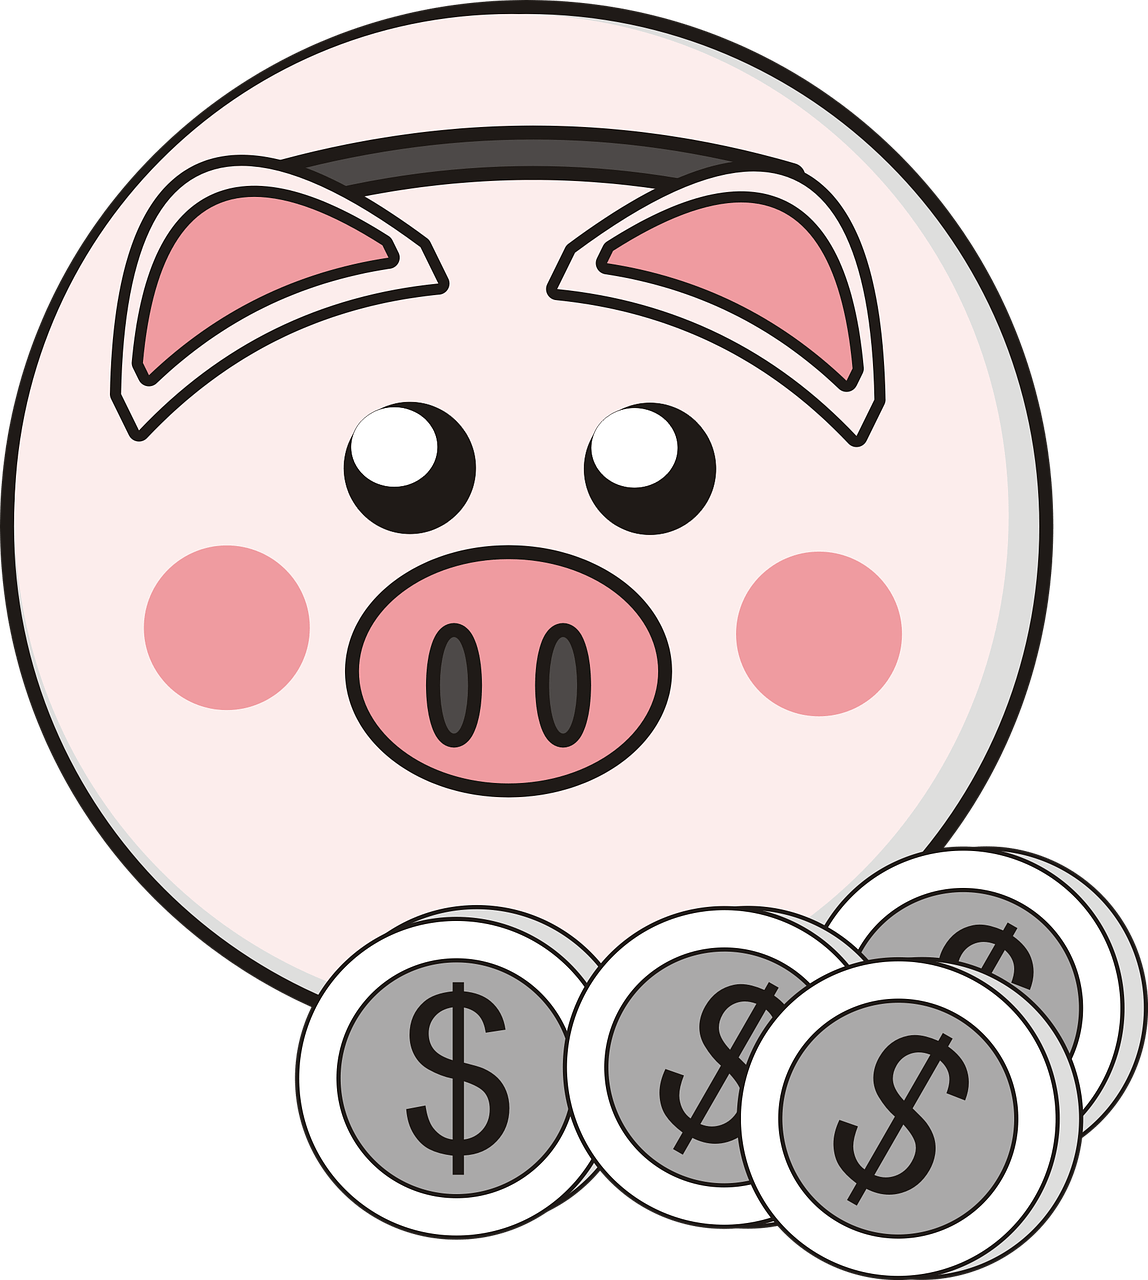 Piggy bank coins png. 4 clipart transparent